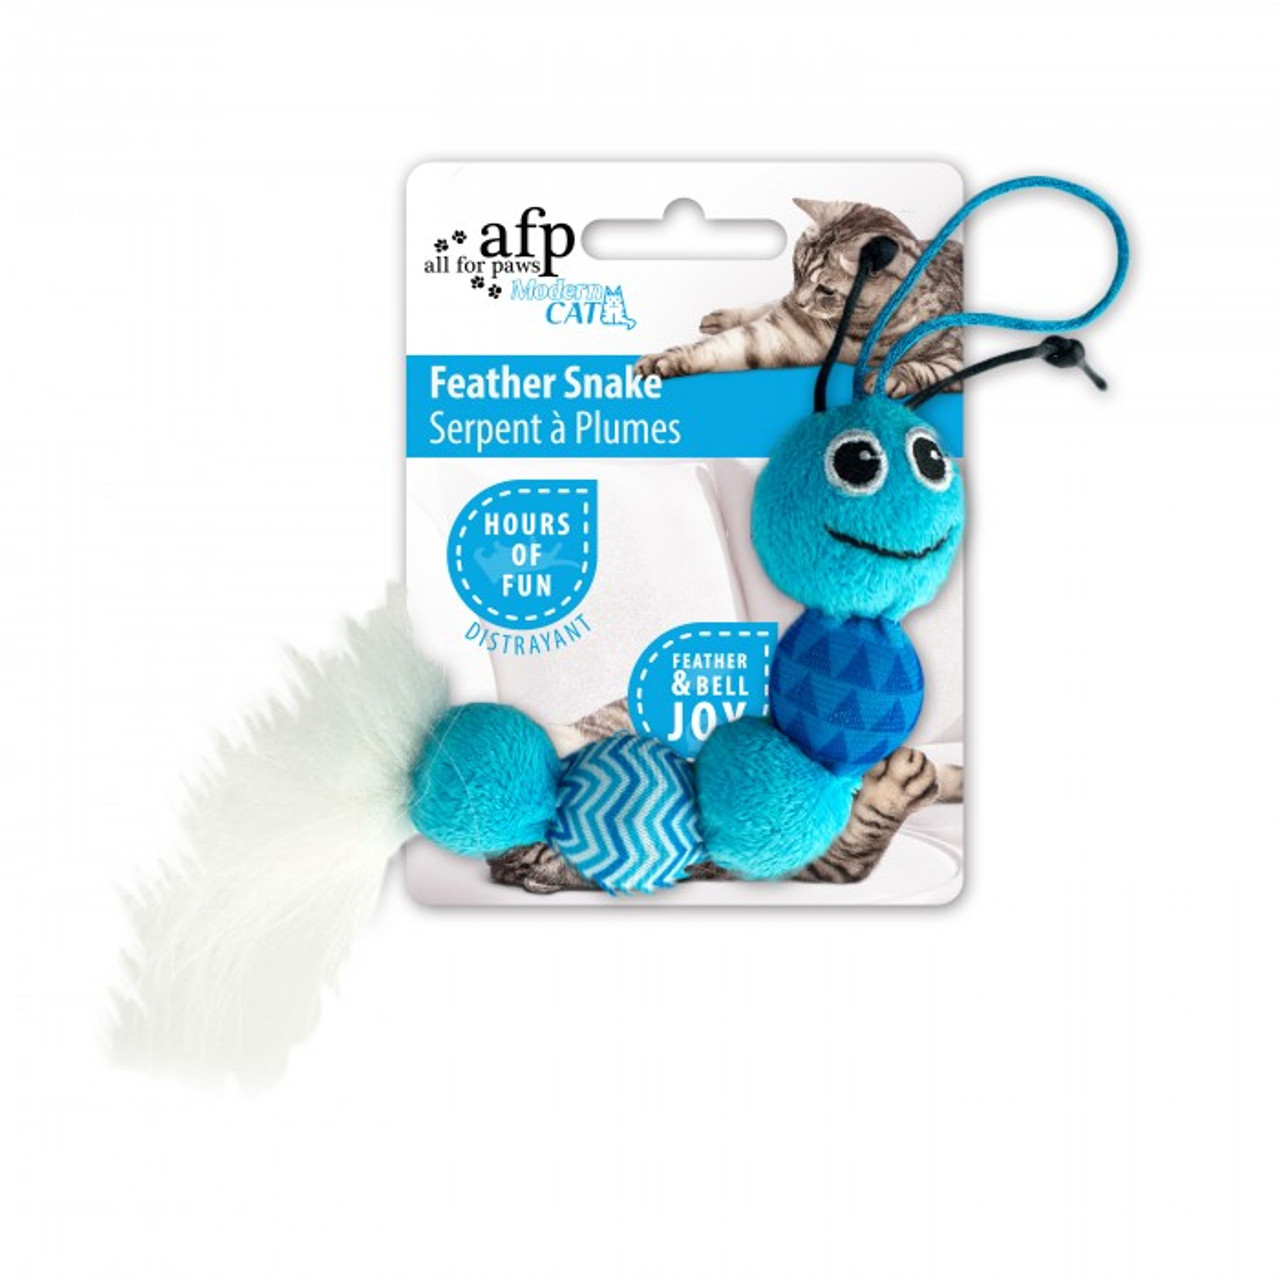 All for Paws Modern Cat Feather Snake Toy - Blue